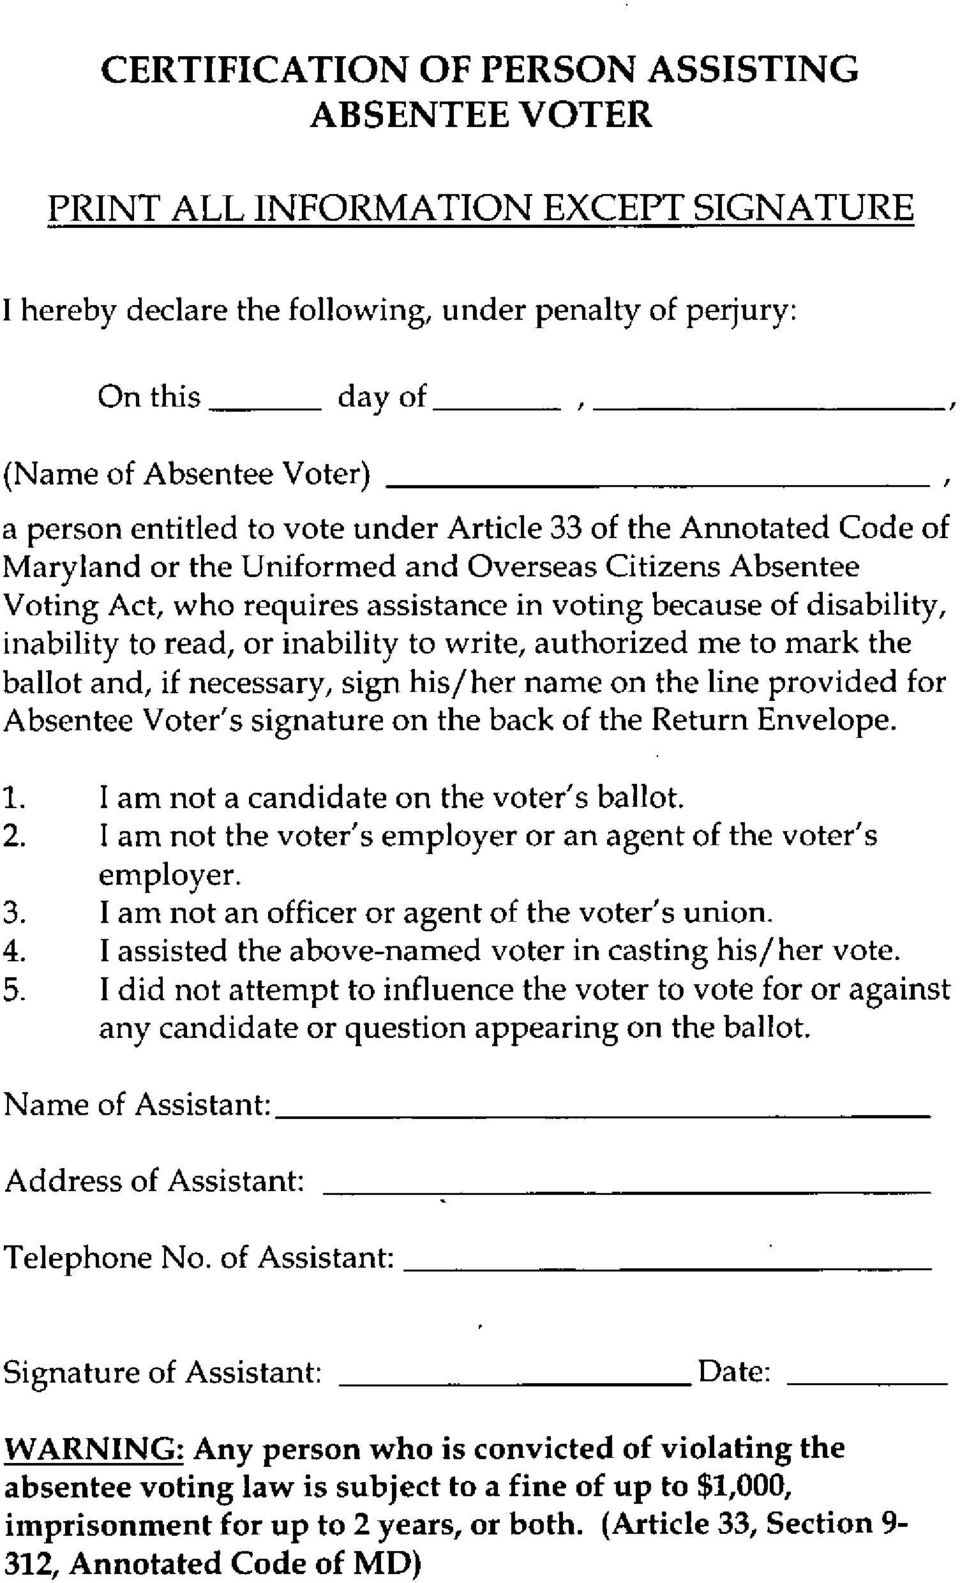 read, or inability to write, authorized me to mark the ballot and, if necessary, sign his/her name on the line provided for Absentee Voter's signature on the back of the Return Envelope. 1.